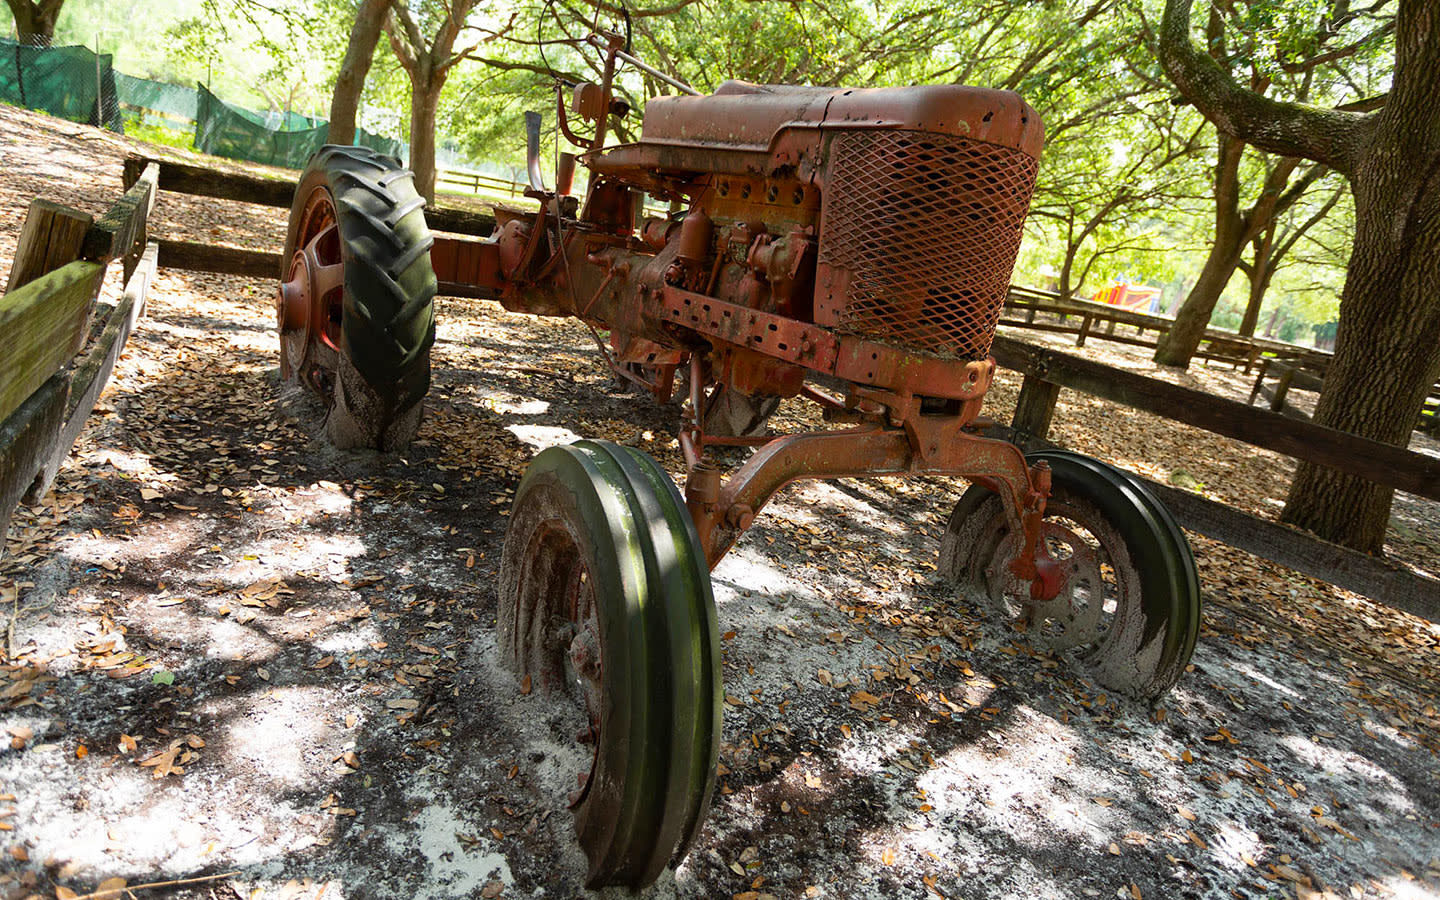 Old tractor found at Amelia Earhart Park